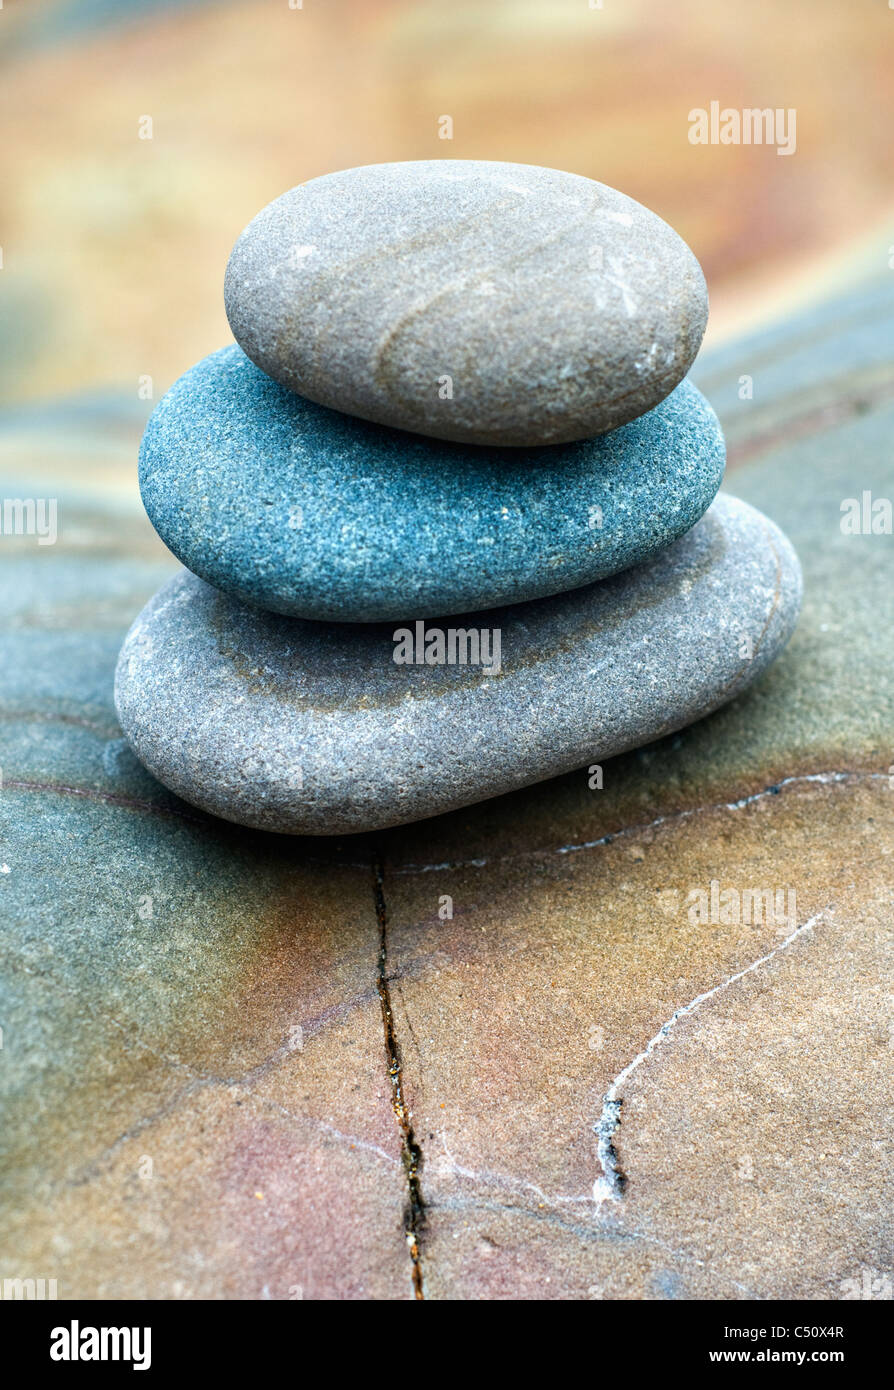 A small pile of pebbles on the beach at Bude in Cornwall, England - Stock Image